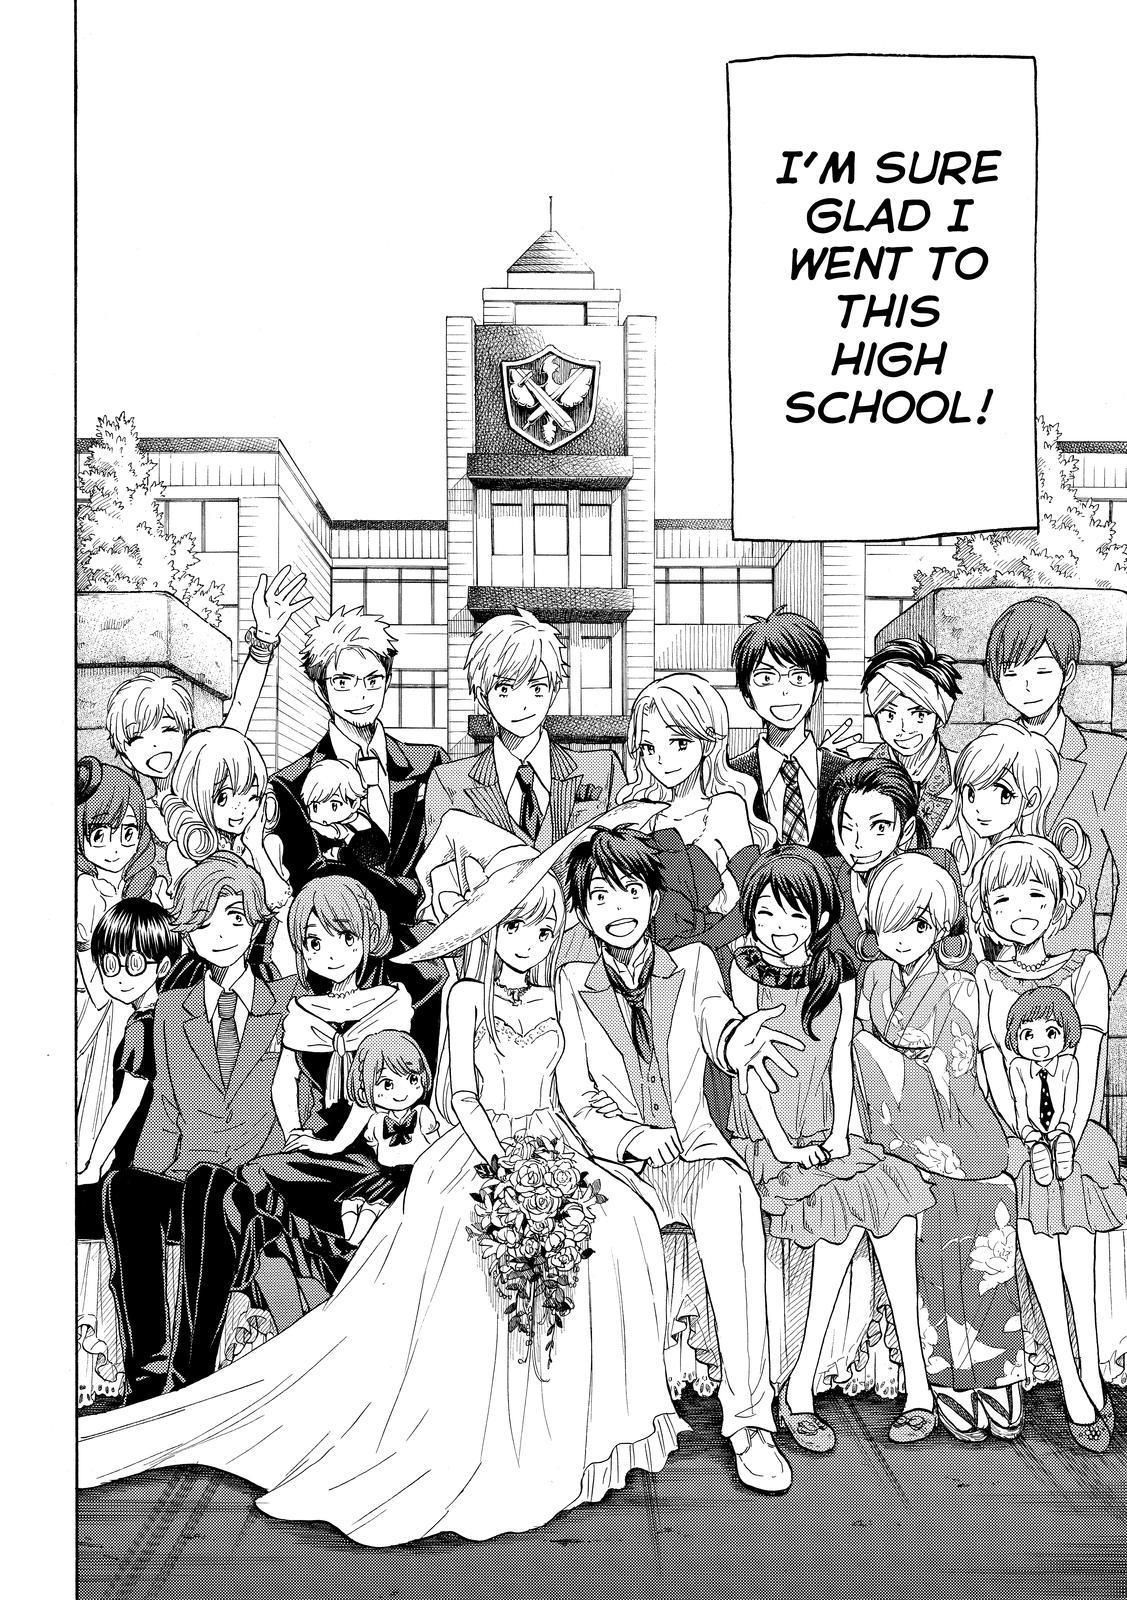 Read Manga Yamada Kun To 7 Nin No Majo Chapter 243 Online In High